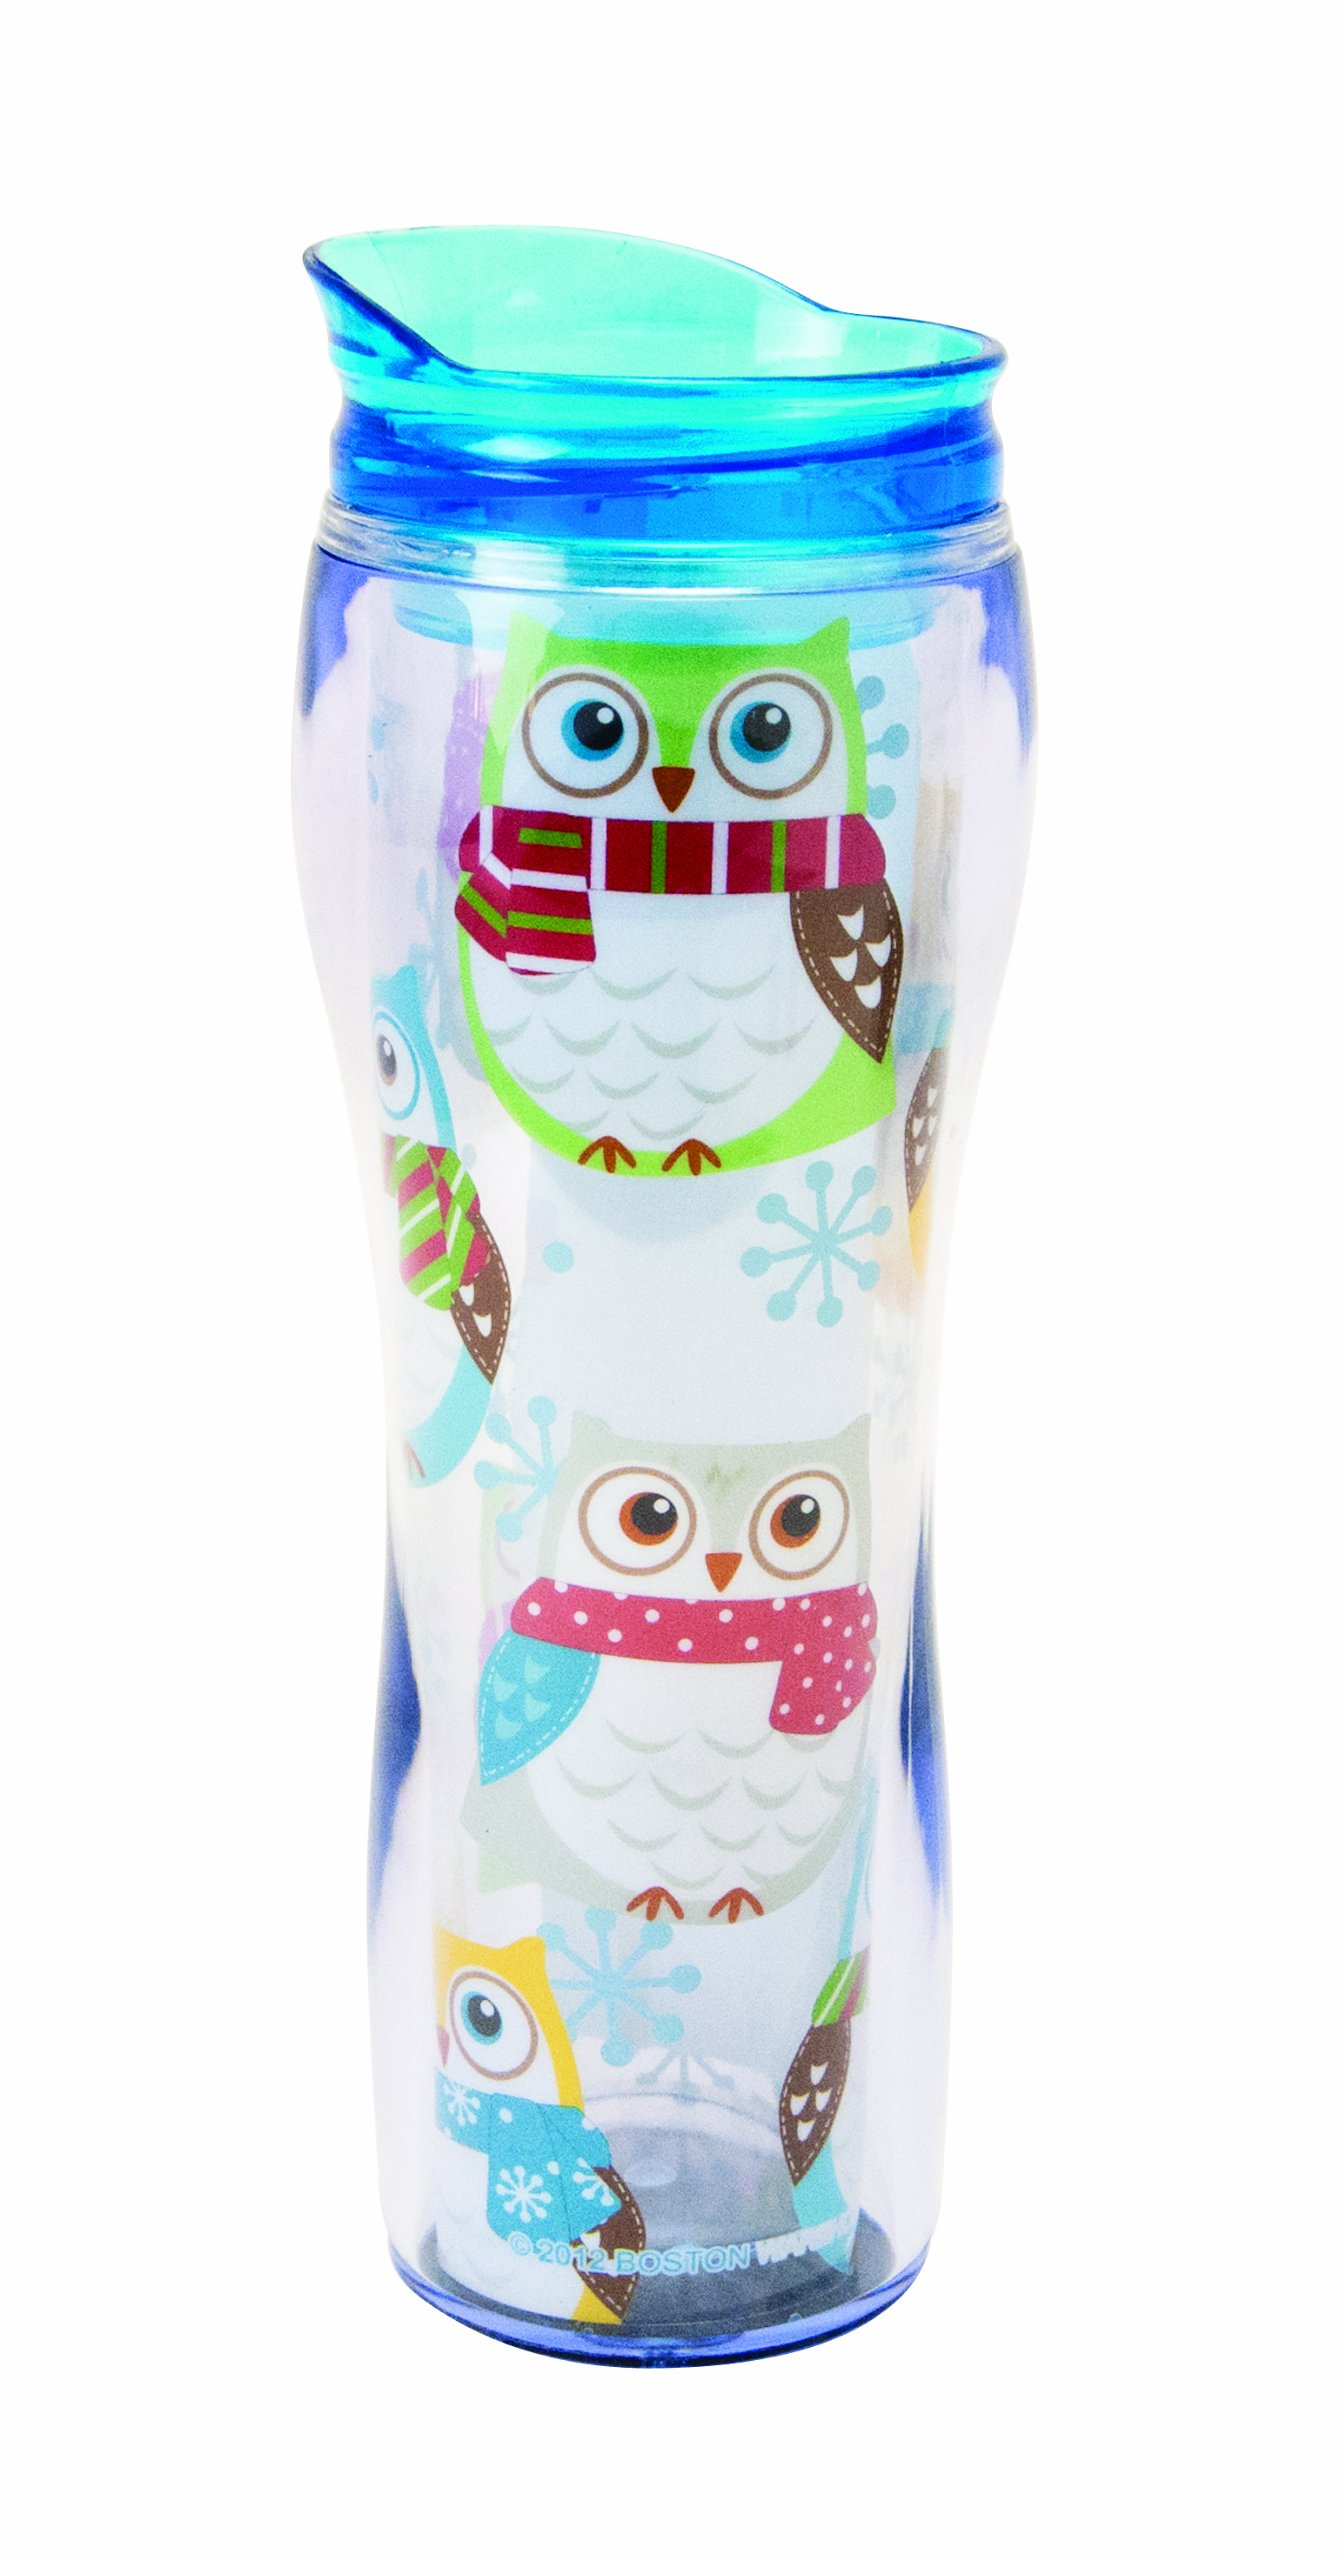 Boston Warehouse Snowy Owls Insulated Travel Mug, 14-Ounce